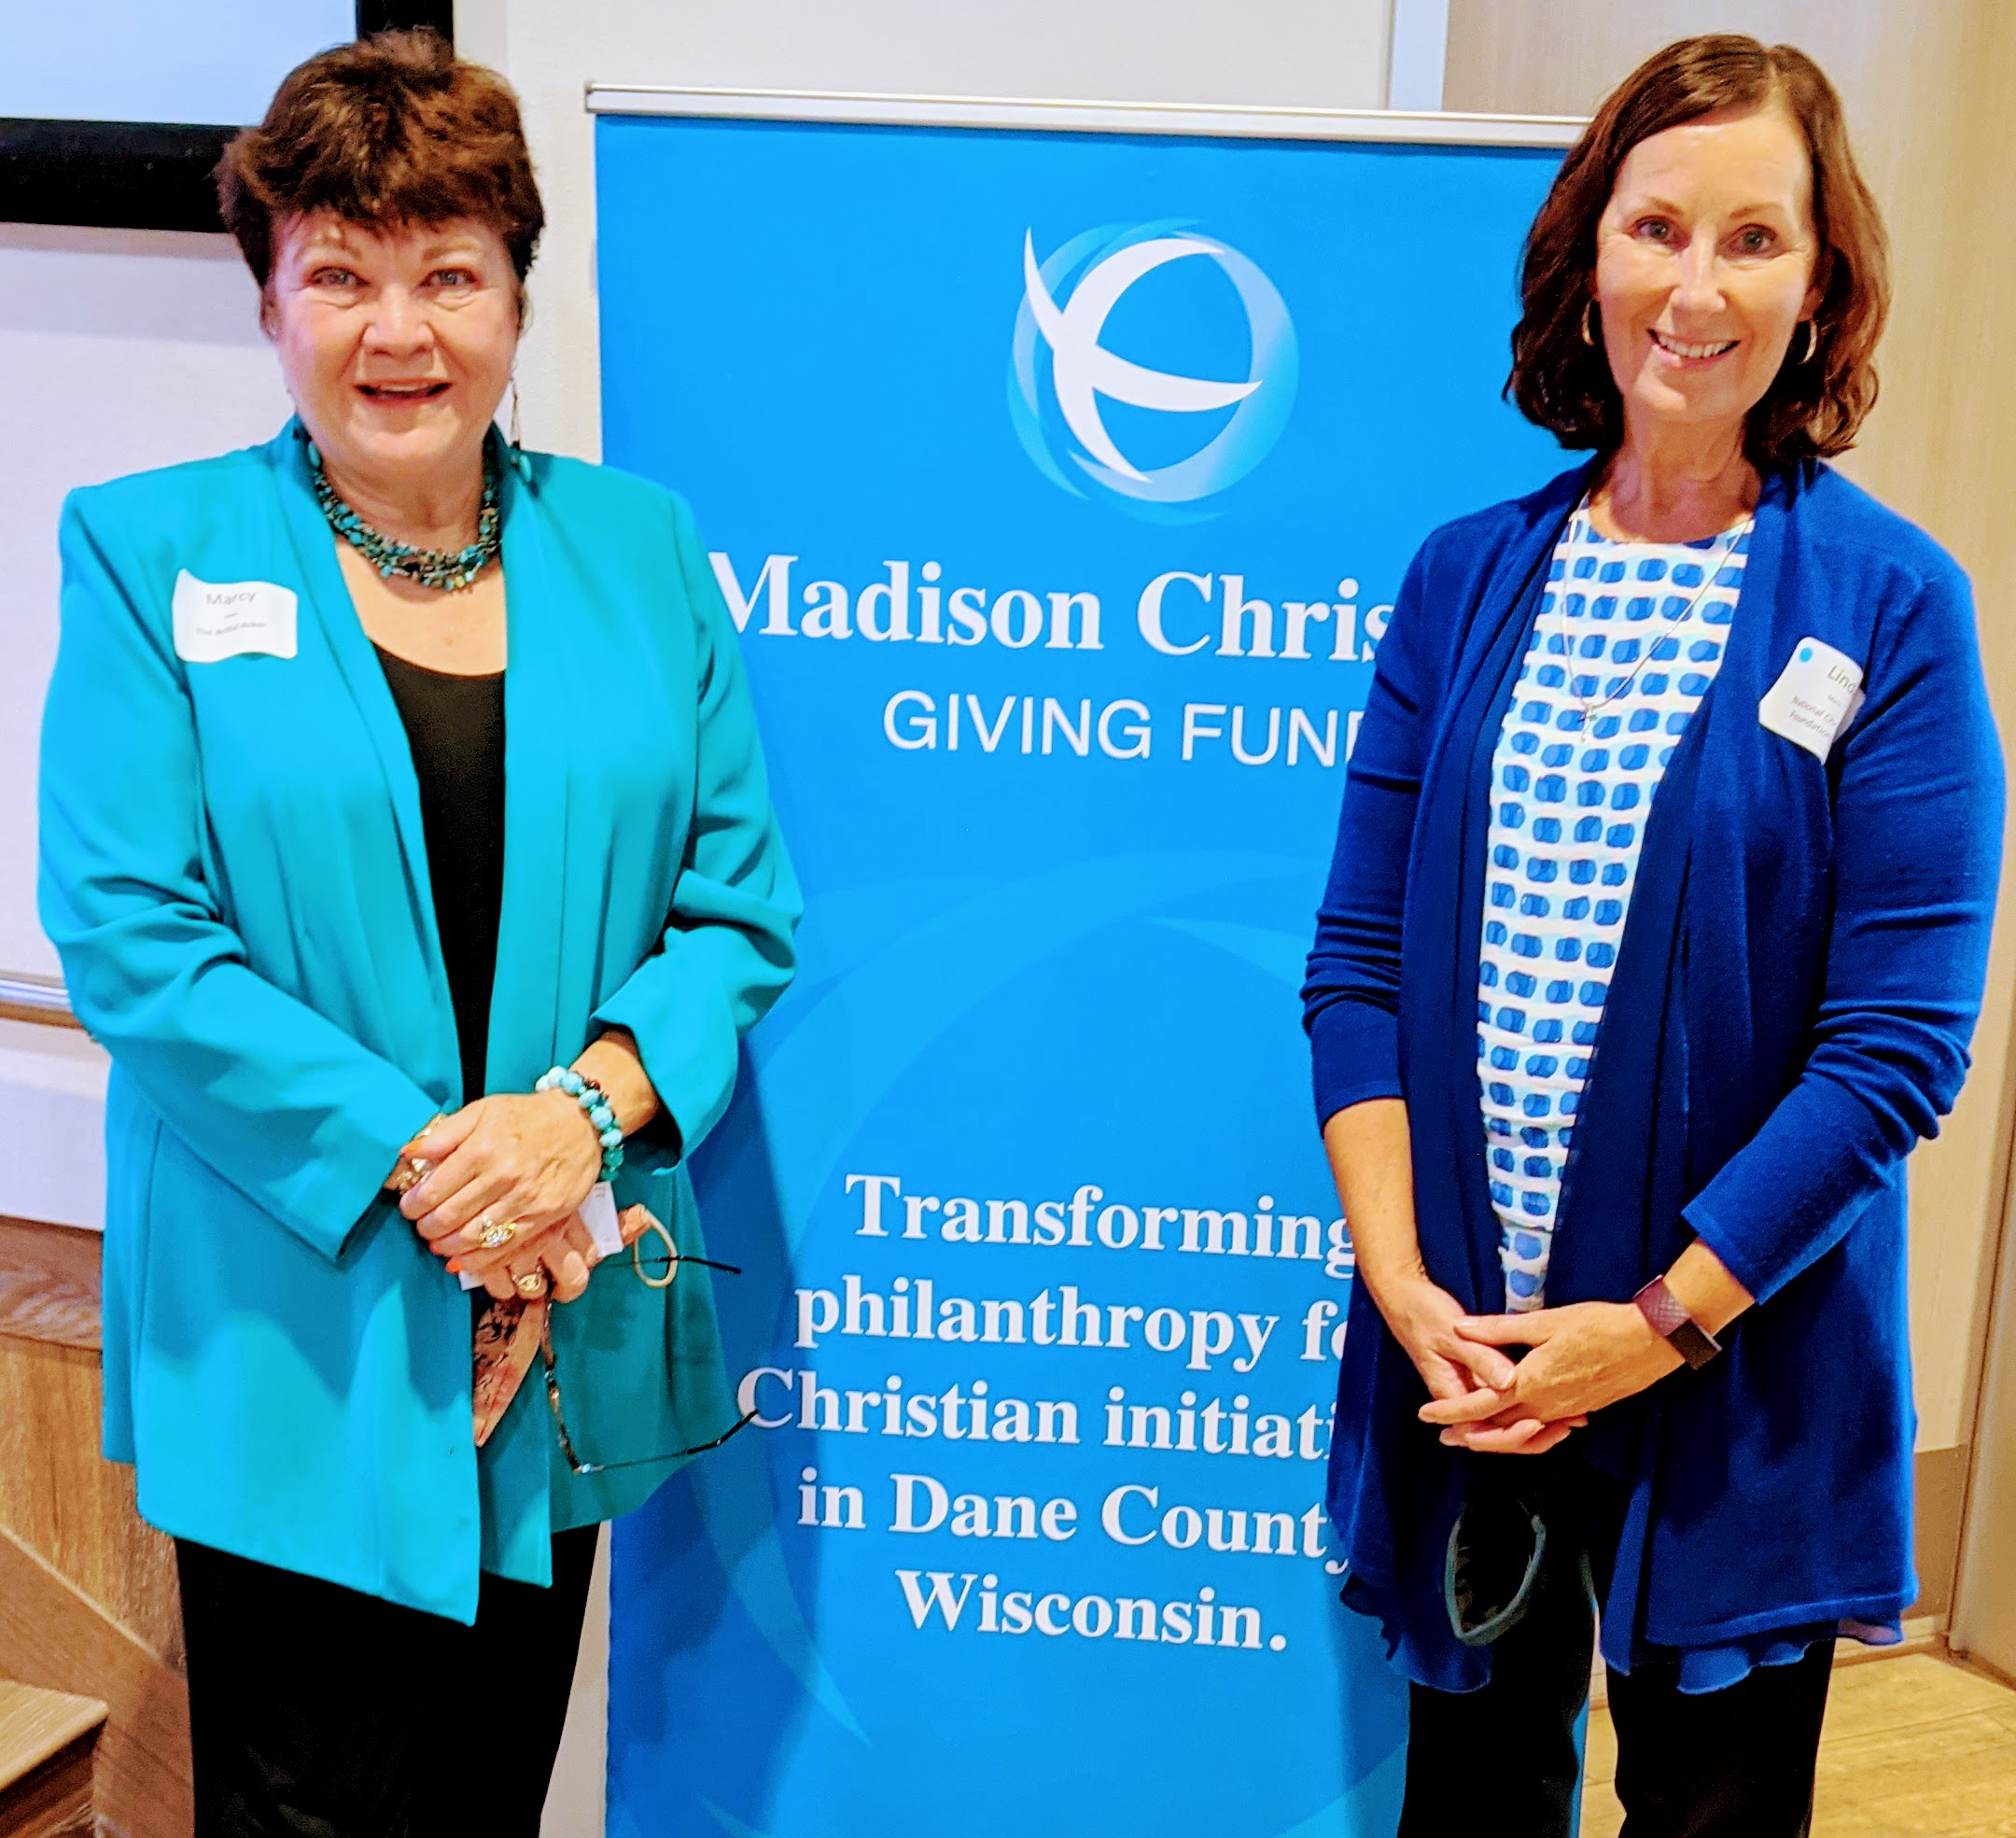 Marcy & Linda -Madison Christian Giving Council